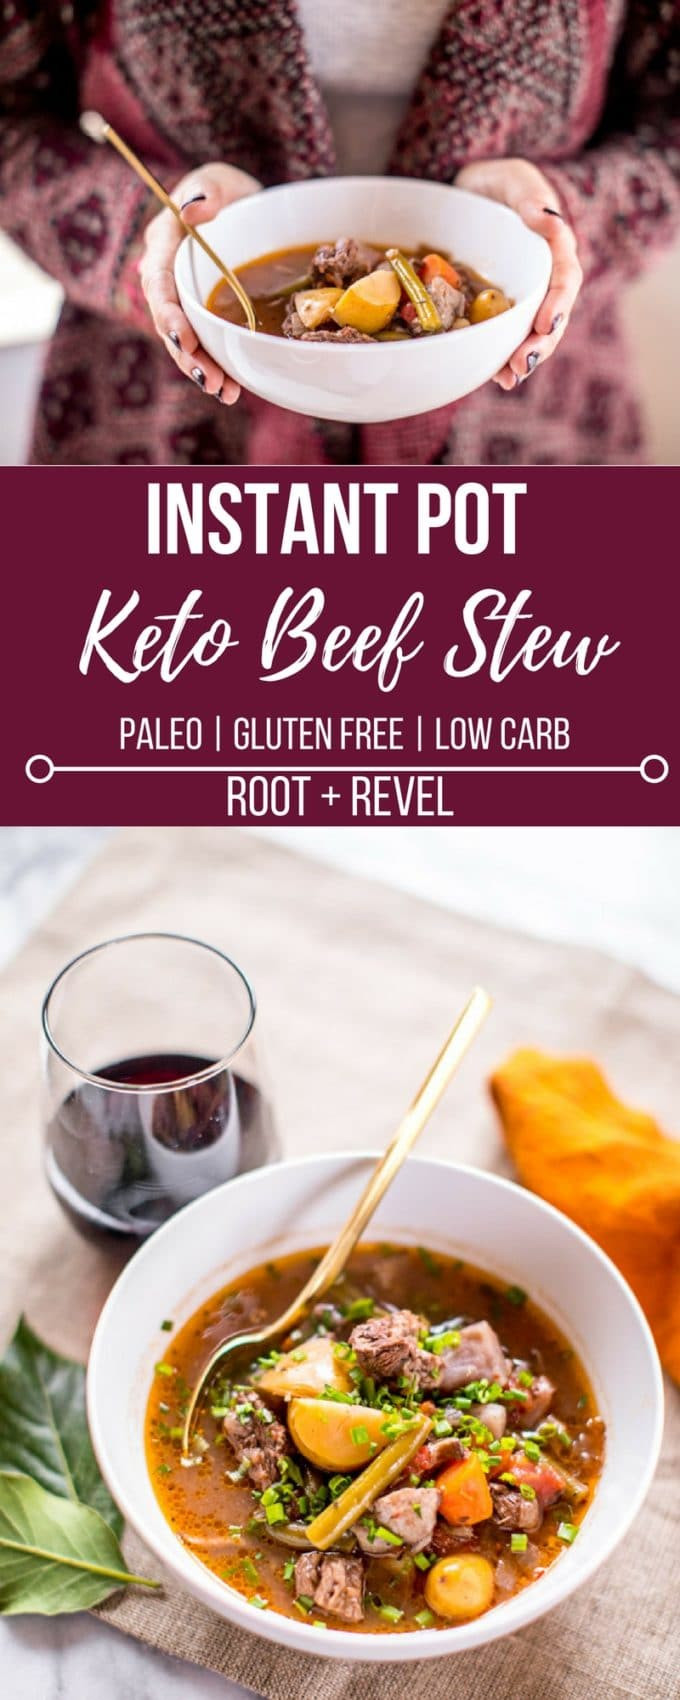 Slow Cooker Keto Beef Stew  Keto Beef Stew in the Instant Pot or Slow Cooker